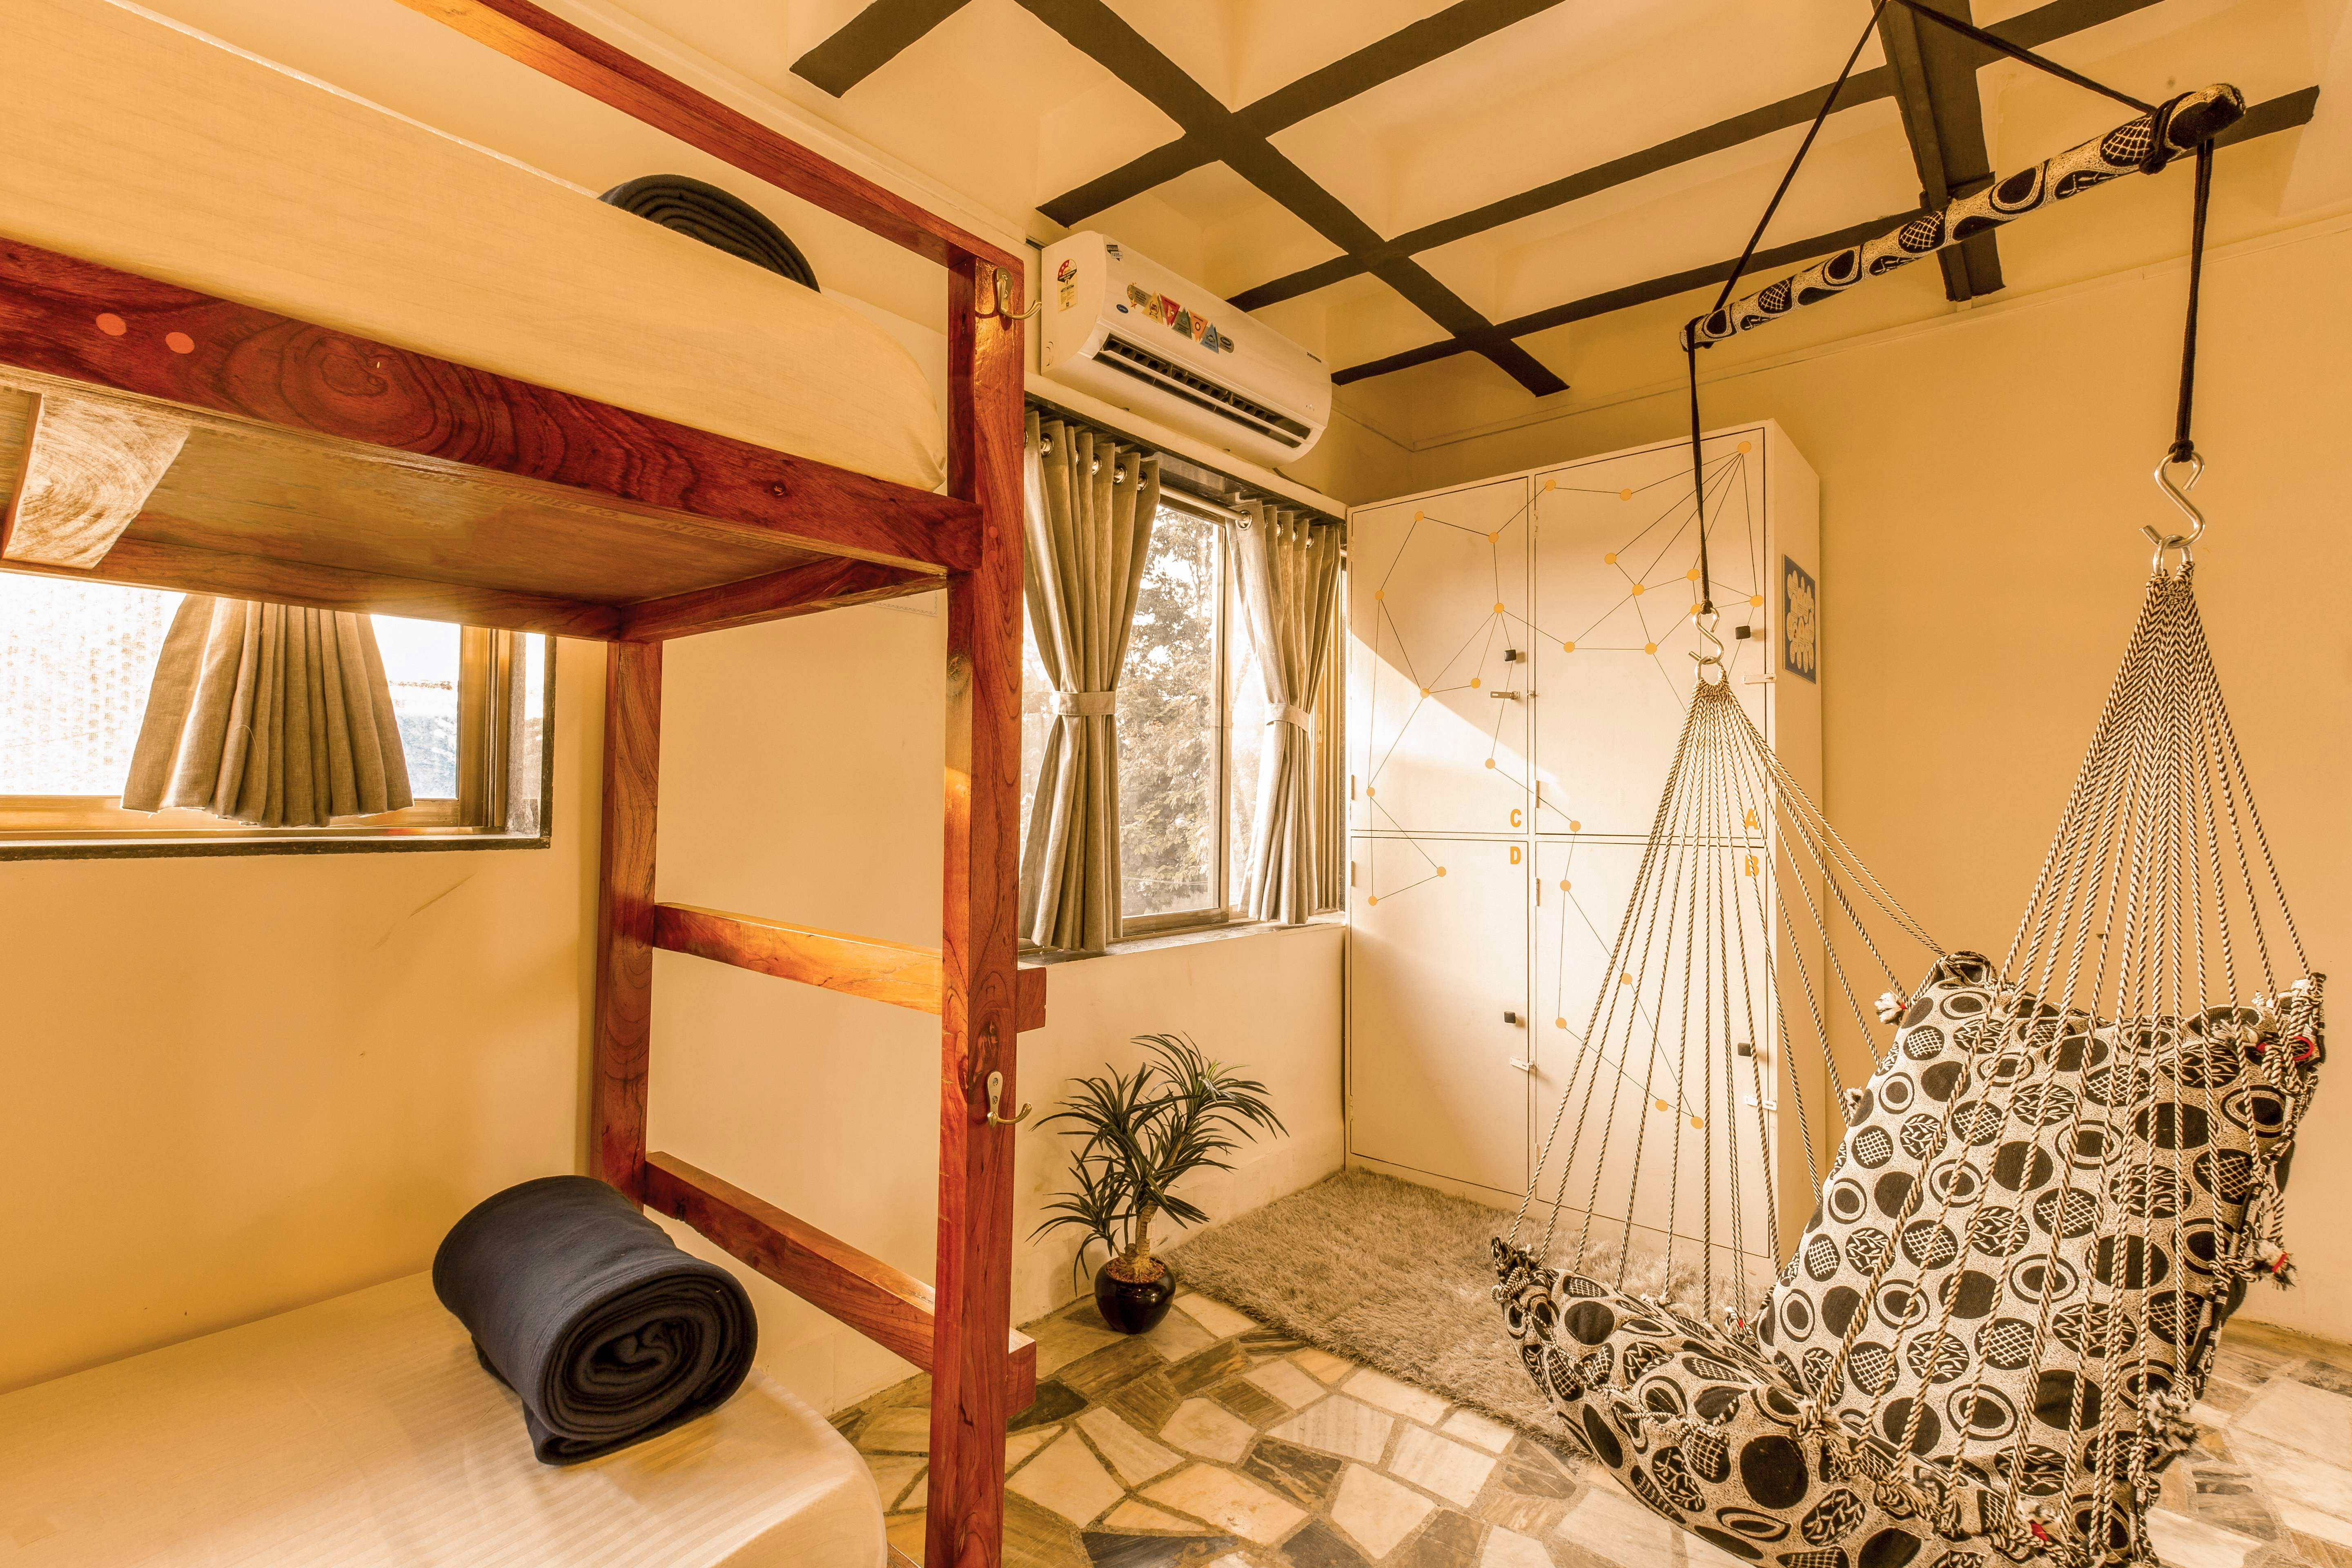 Stay At This Cosy Backpackers Hostel Next Time You Visit Mumbai